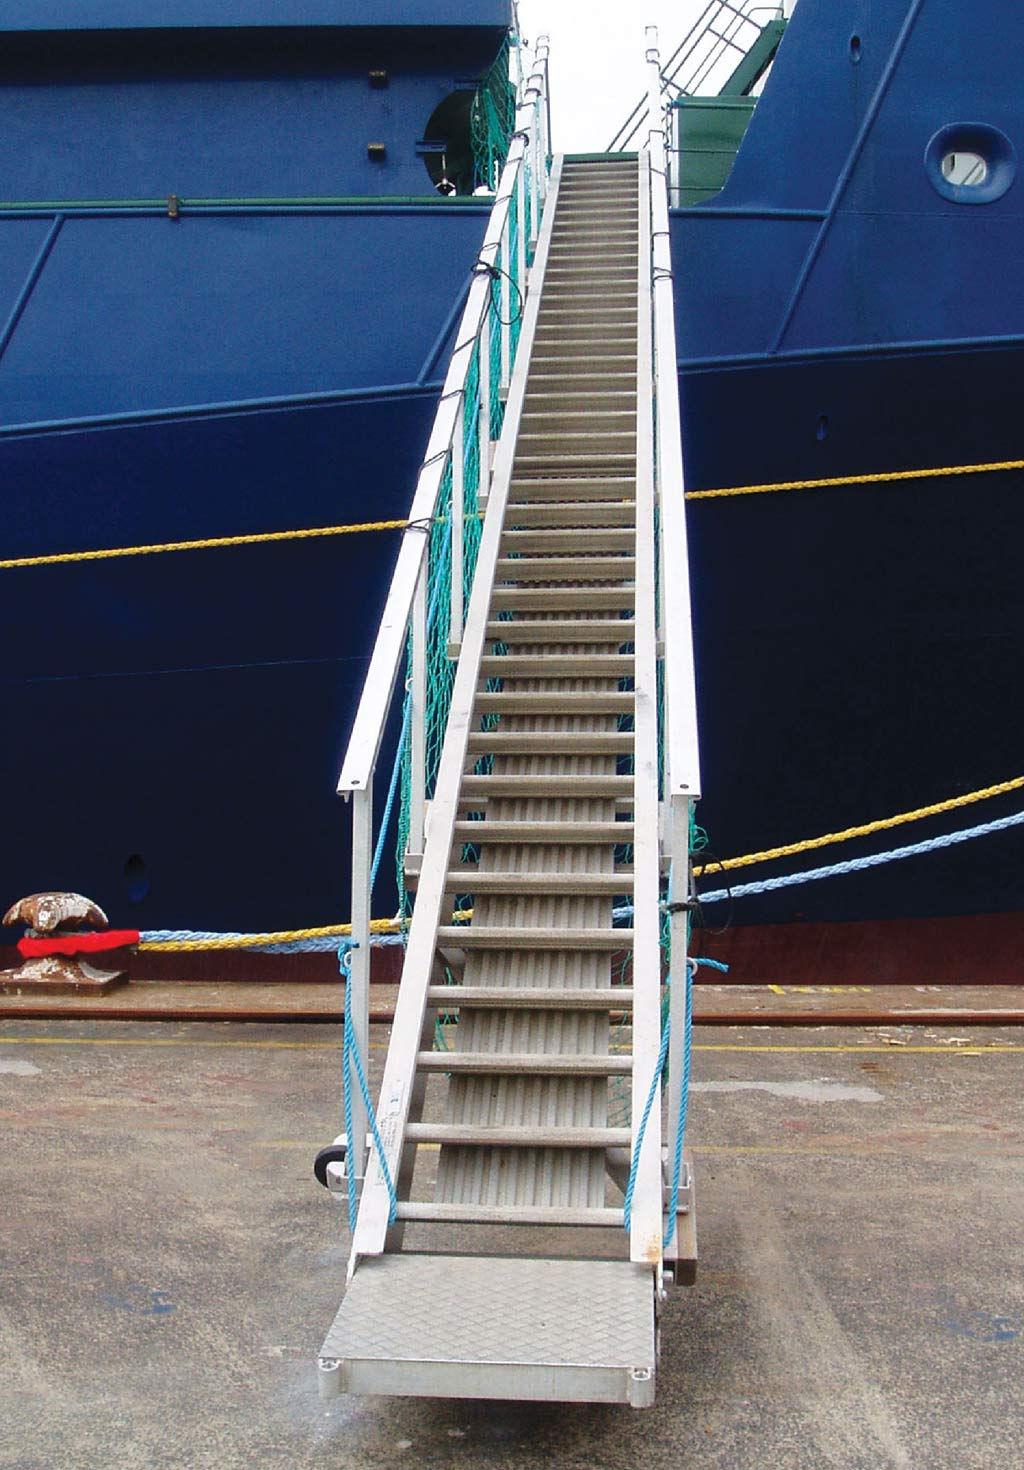 Accommodation Ladders - Curved Step or Self-Levelling Tread